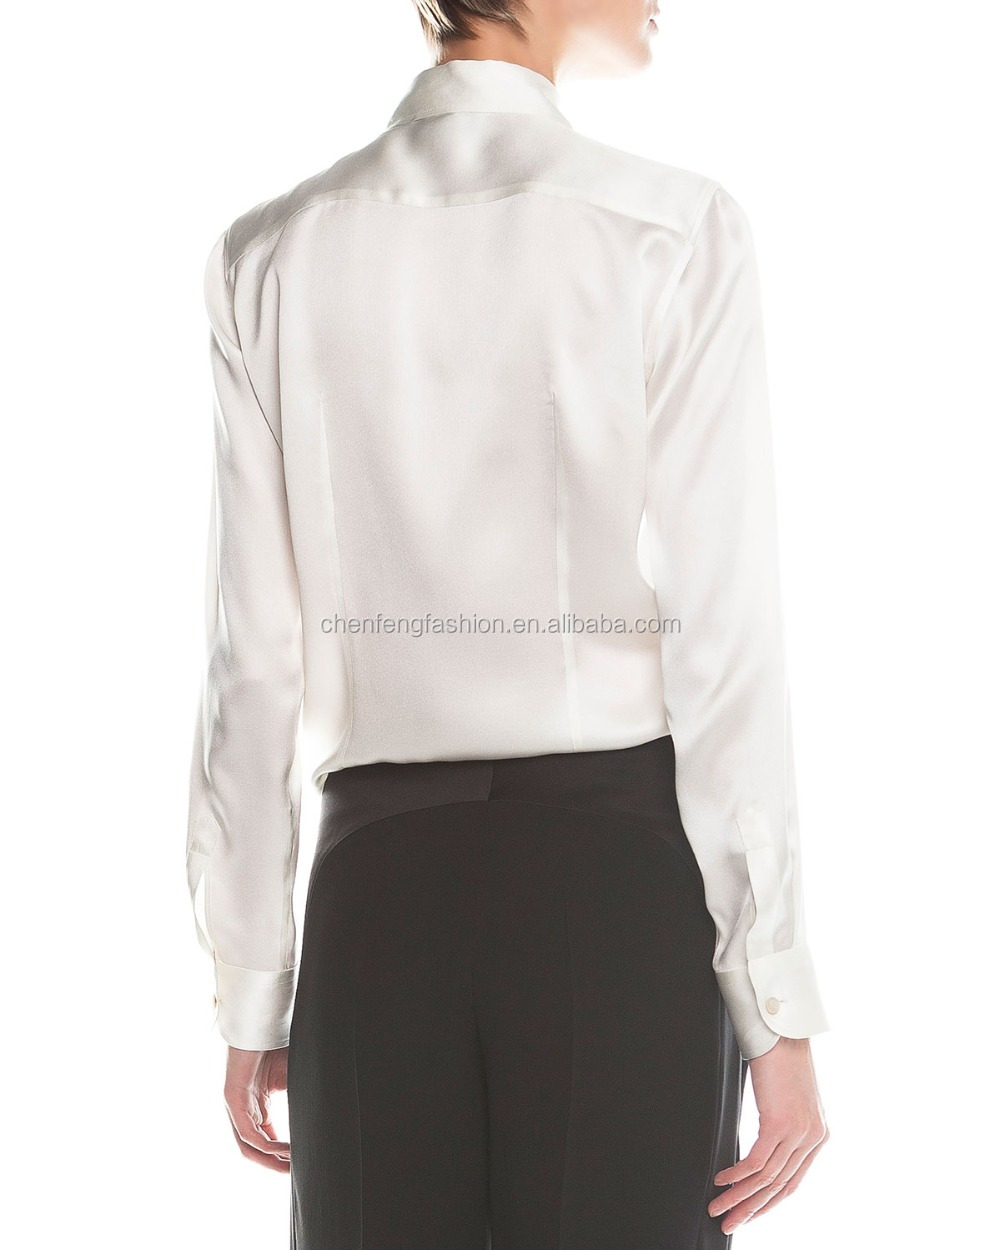 White Satin Blouse Long Sleeve 38